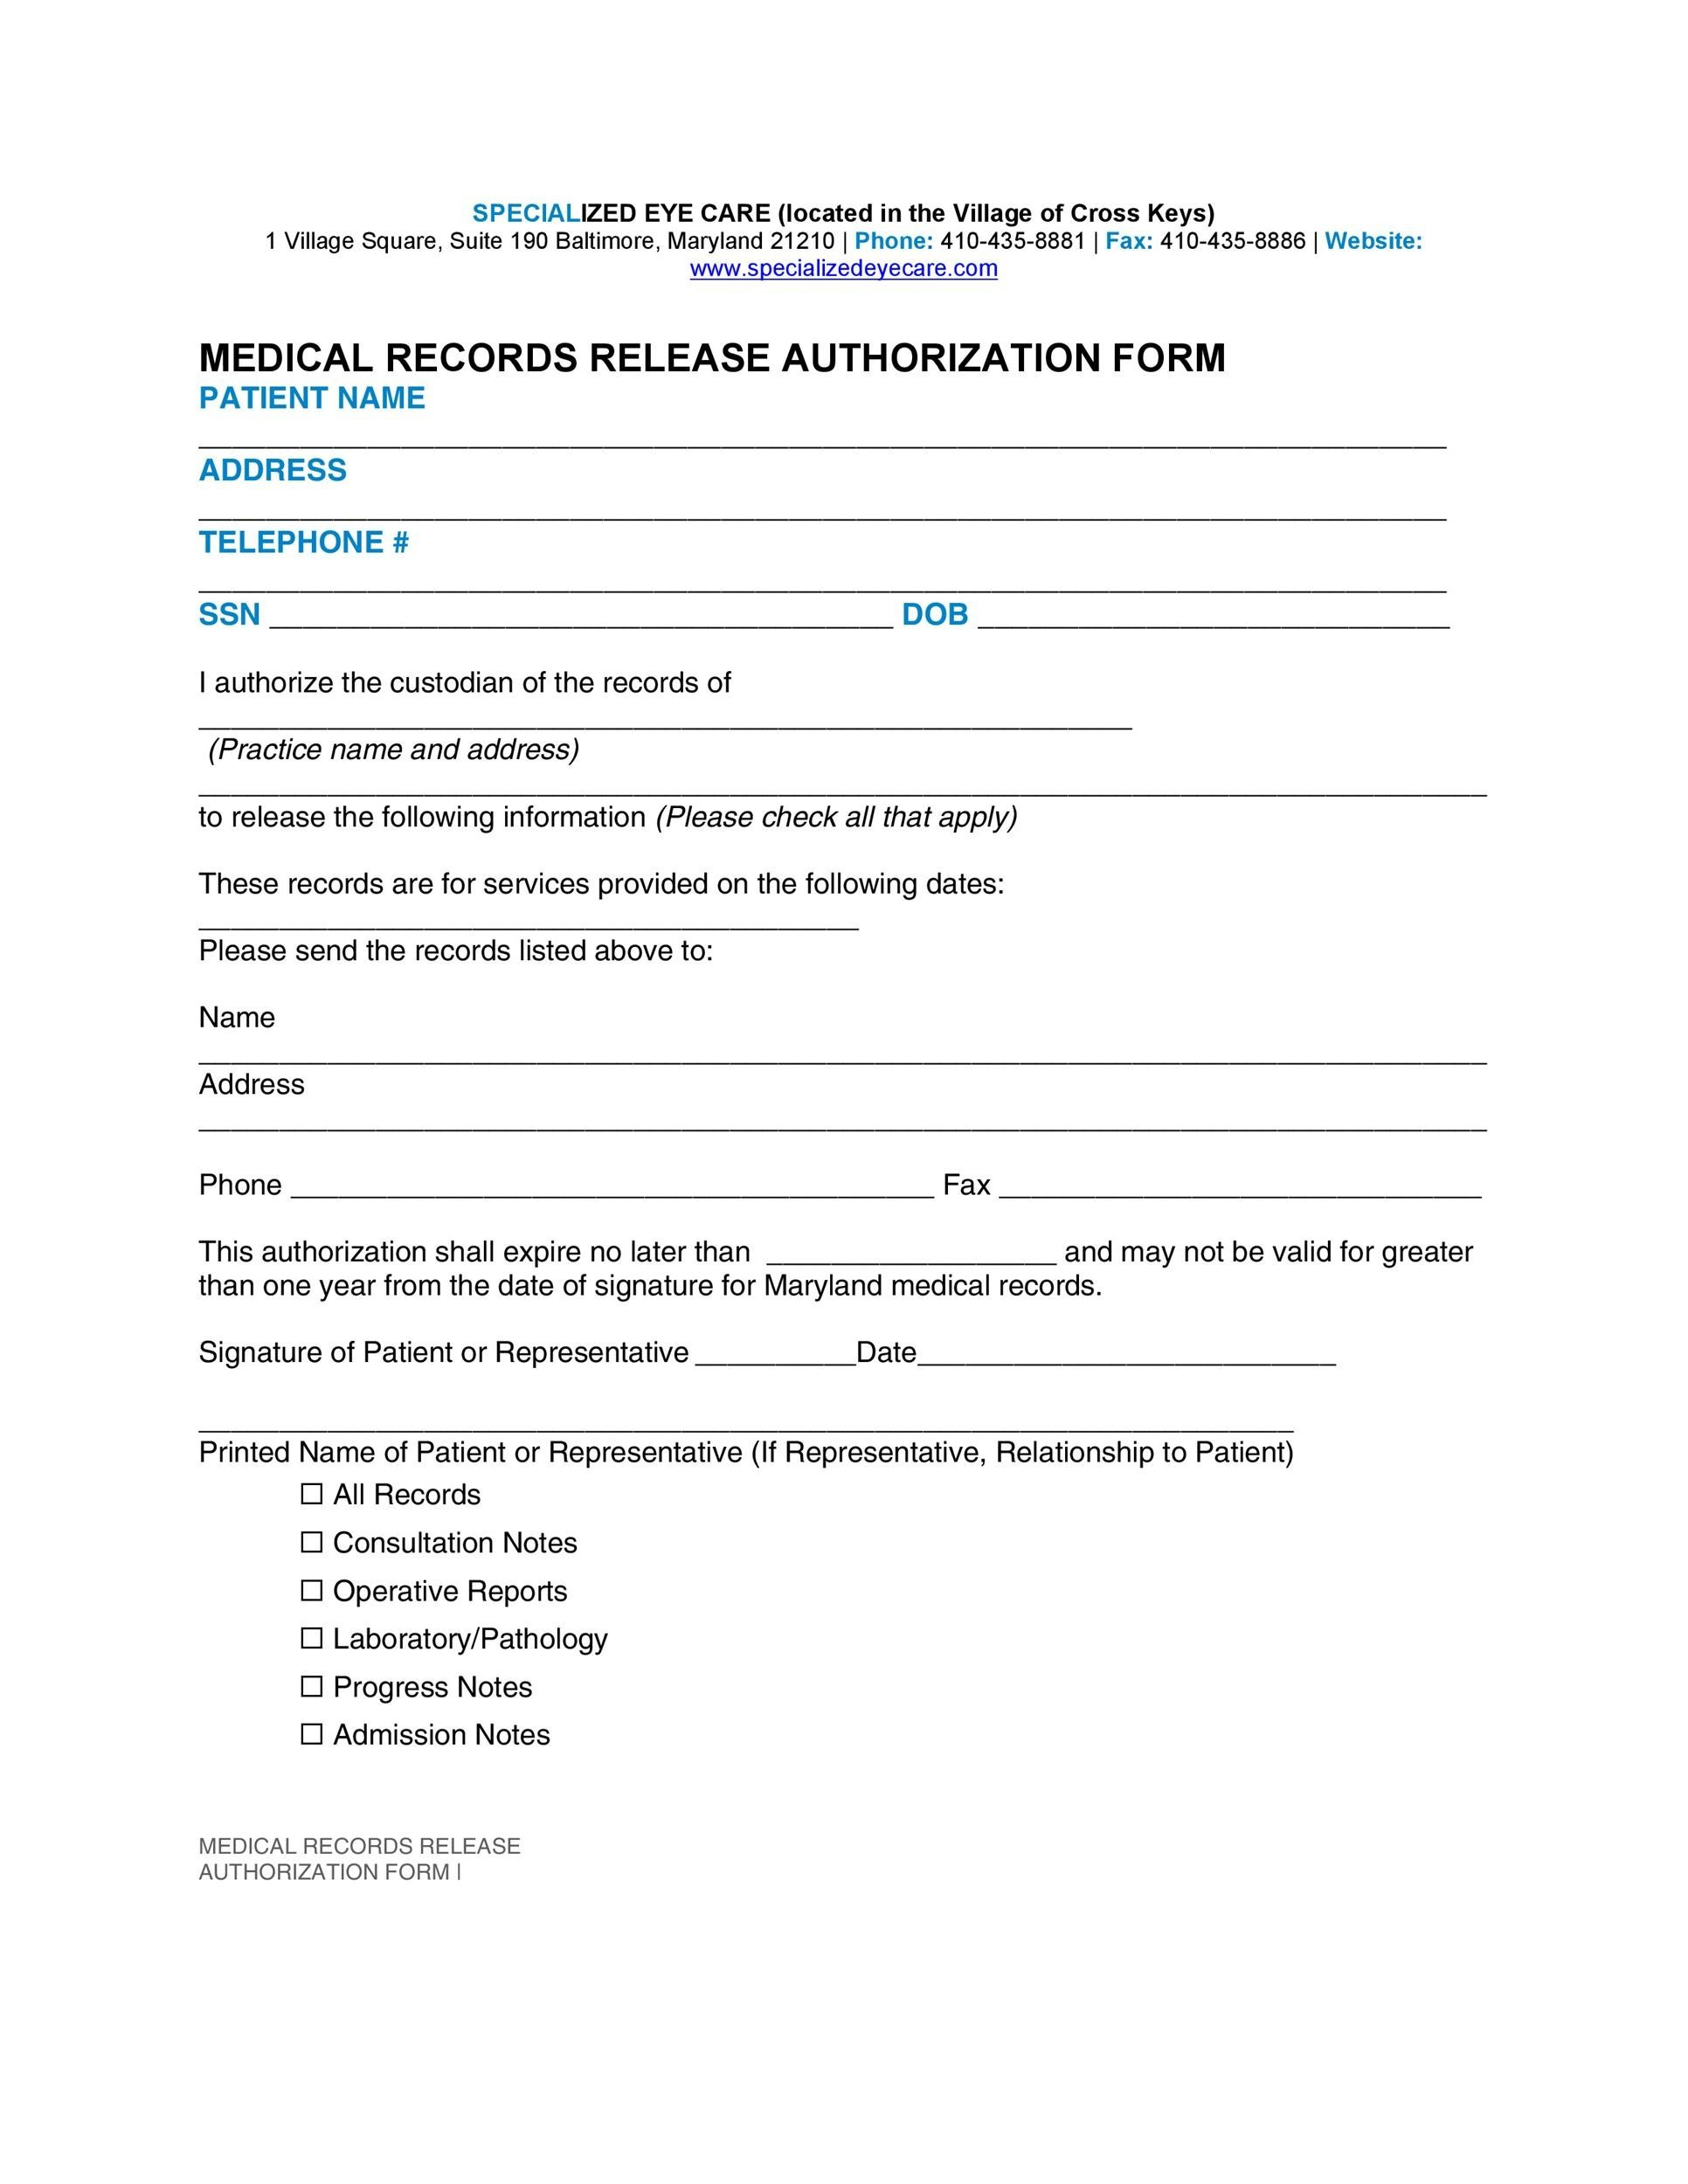 30+ Medical Release Form Templates ᐅ Template Lab